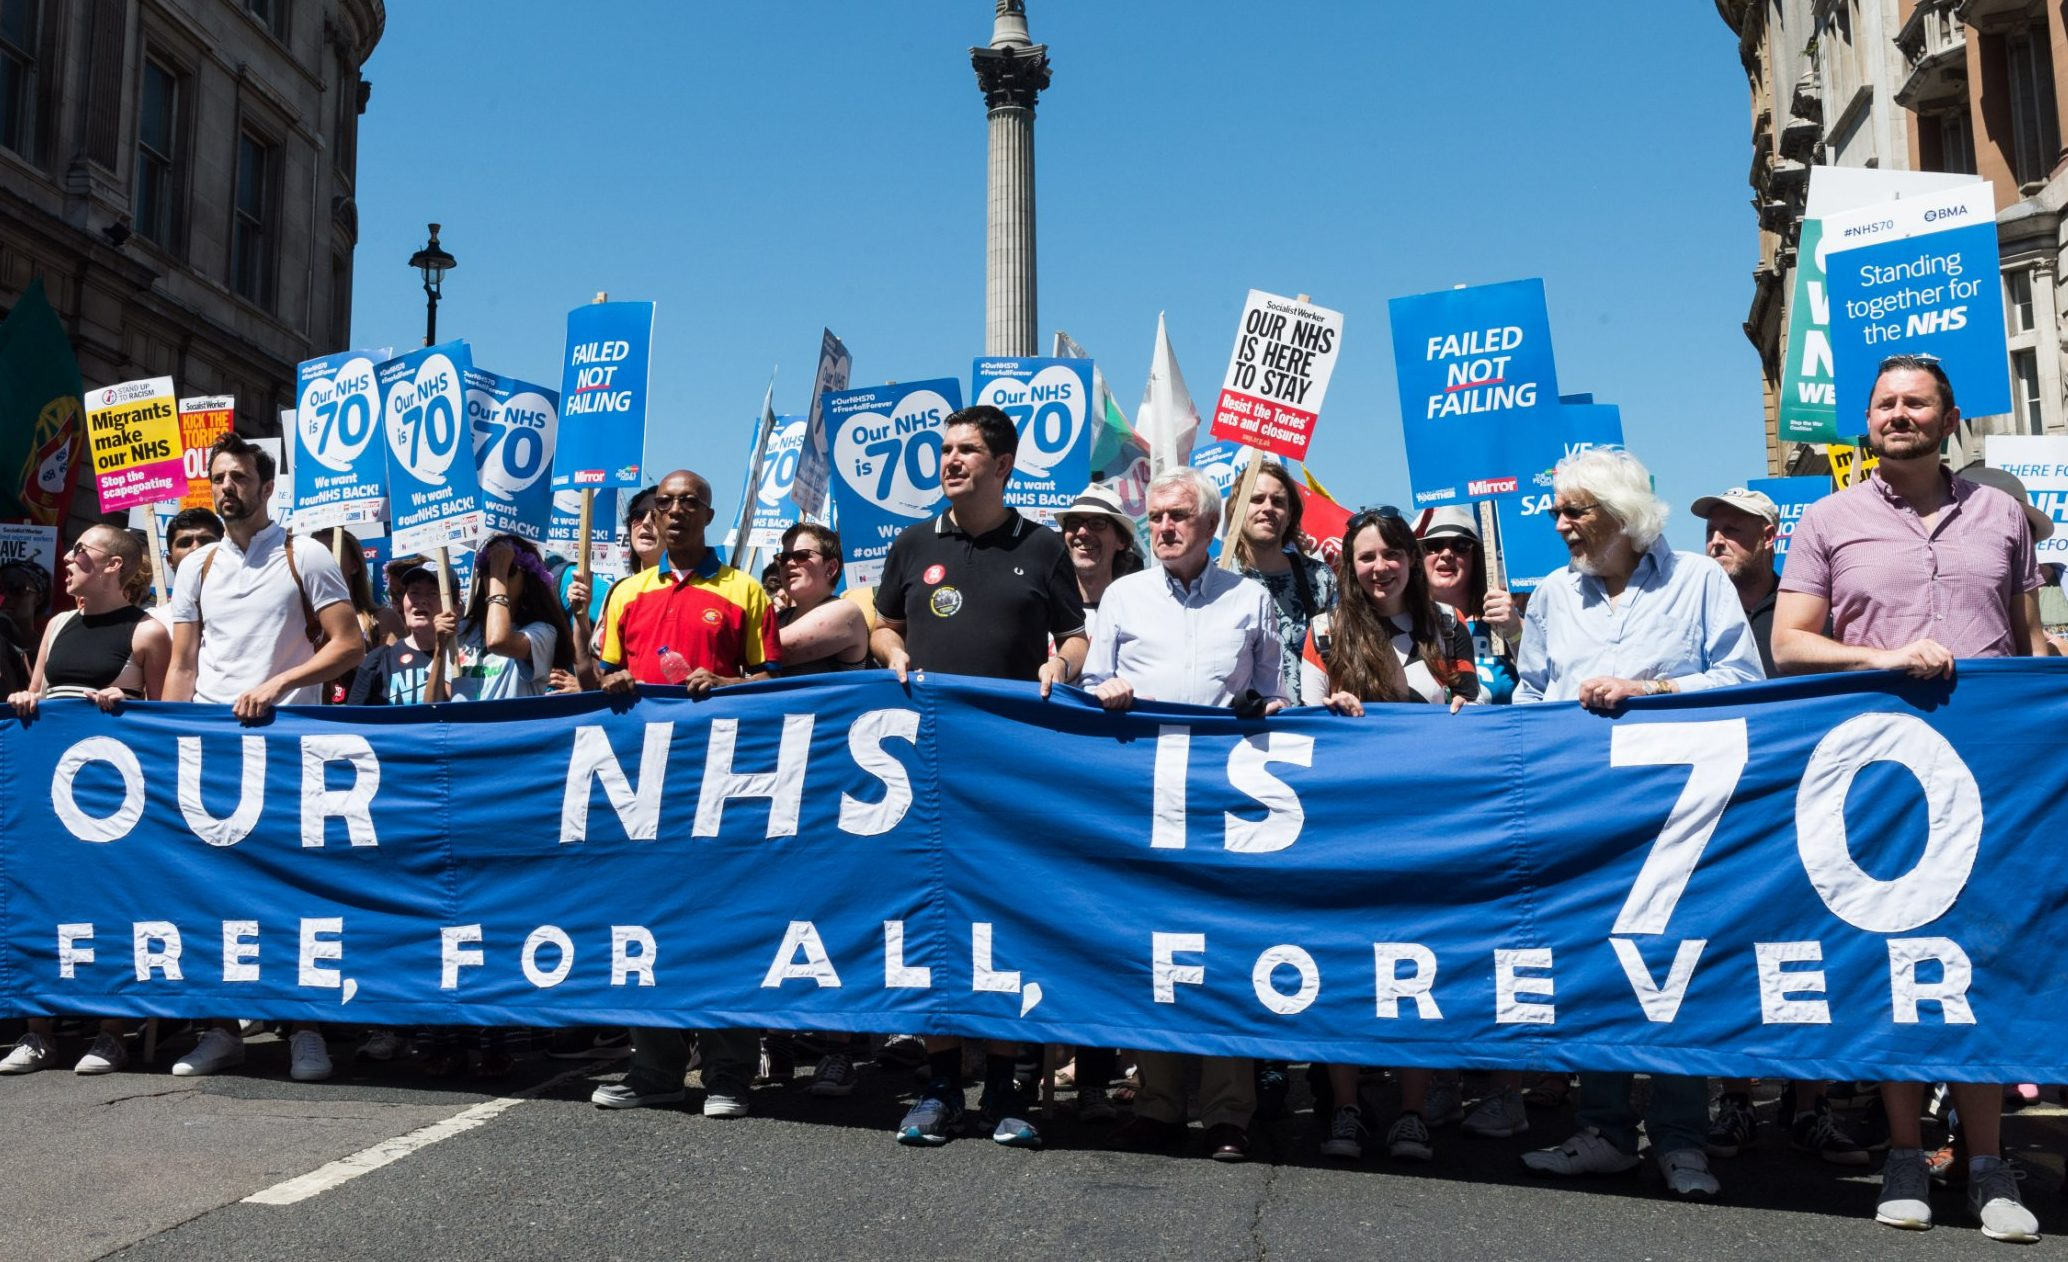 As we celebrate the NHS's 70th birthday, I want to say thank you for the years it's given me